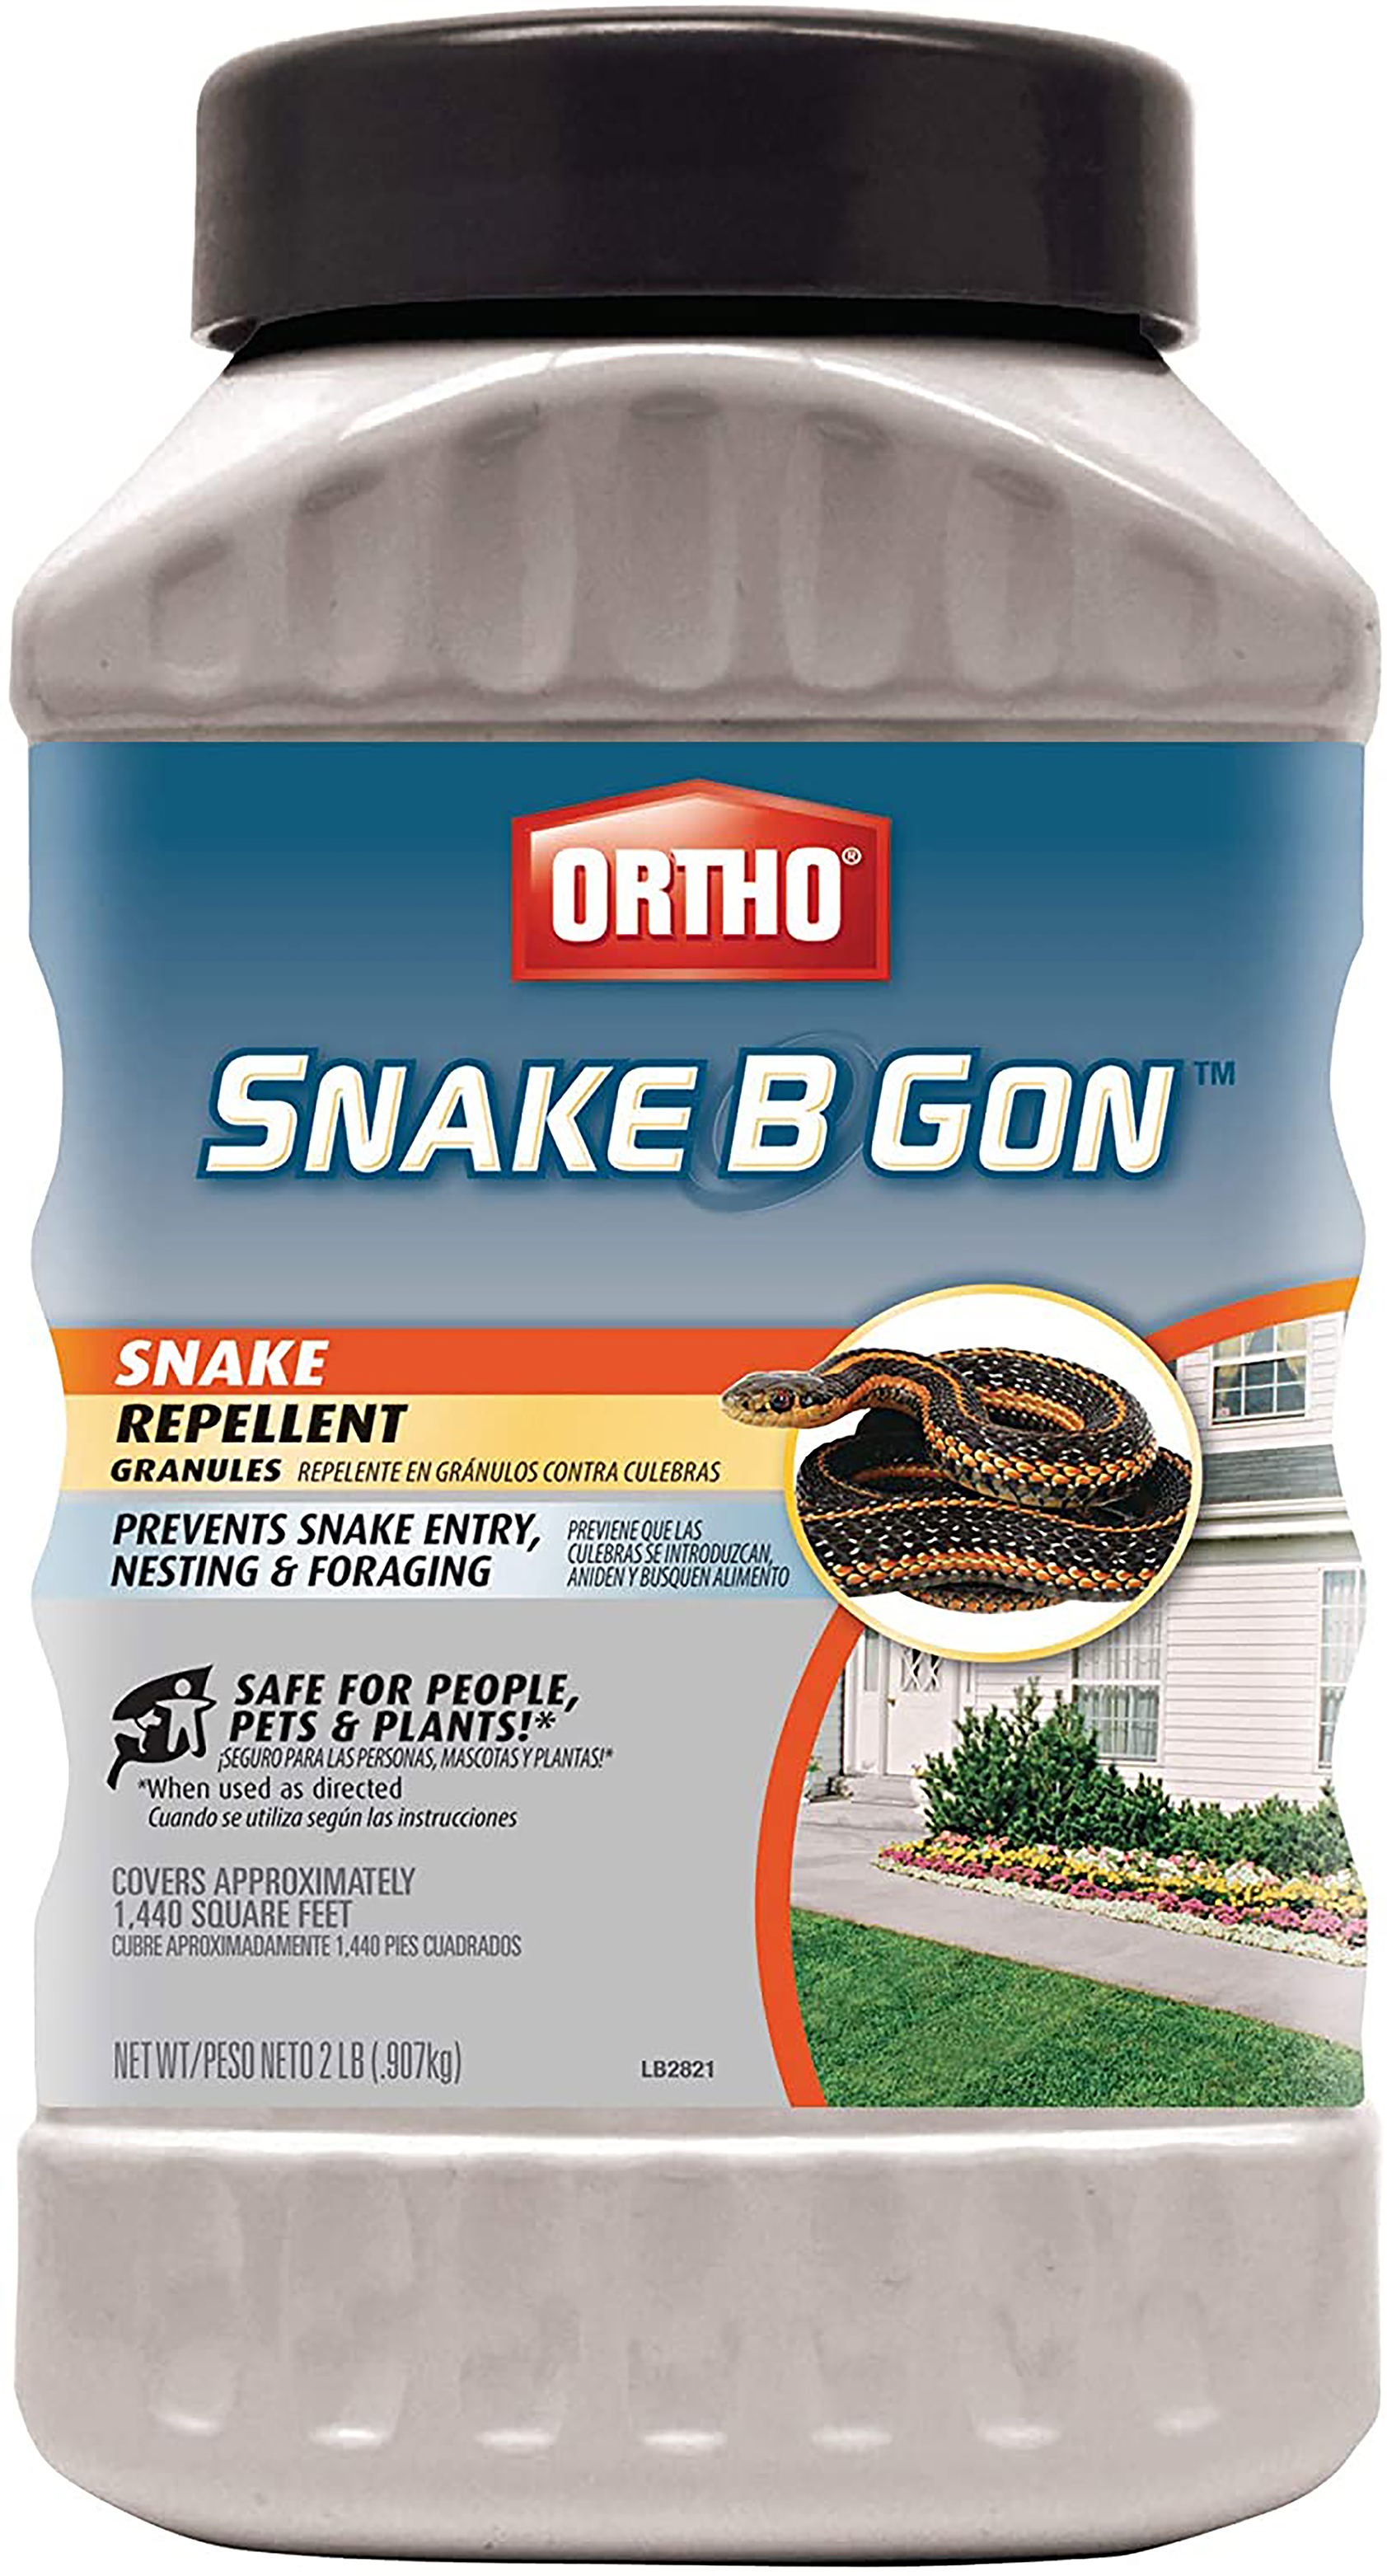 Snake-B-Gon Snake Repellent Granules  review